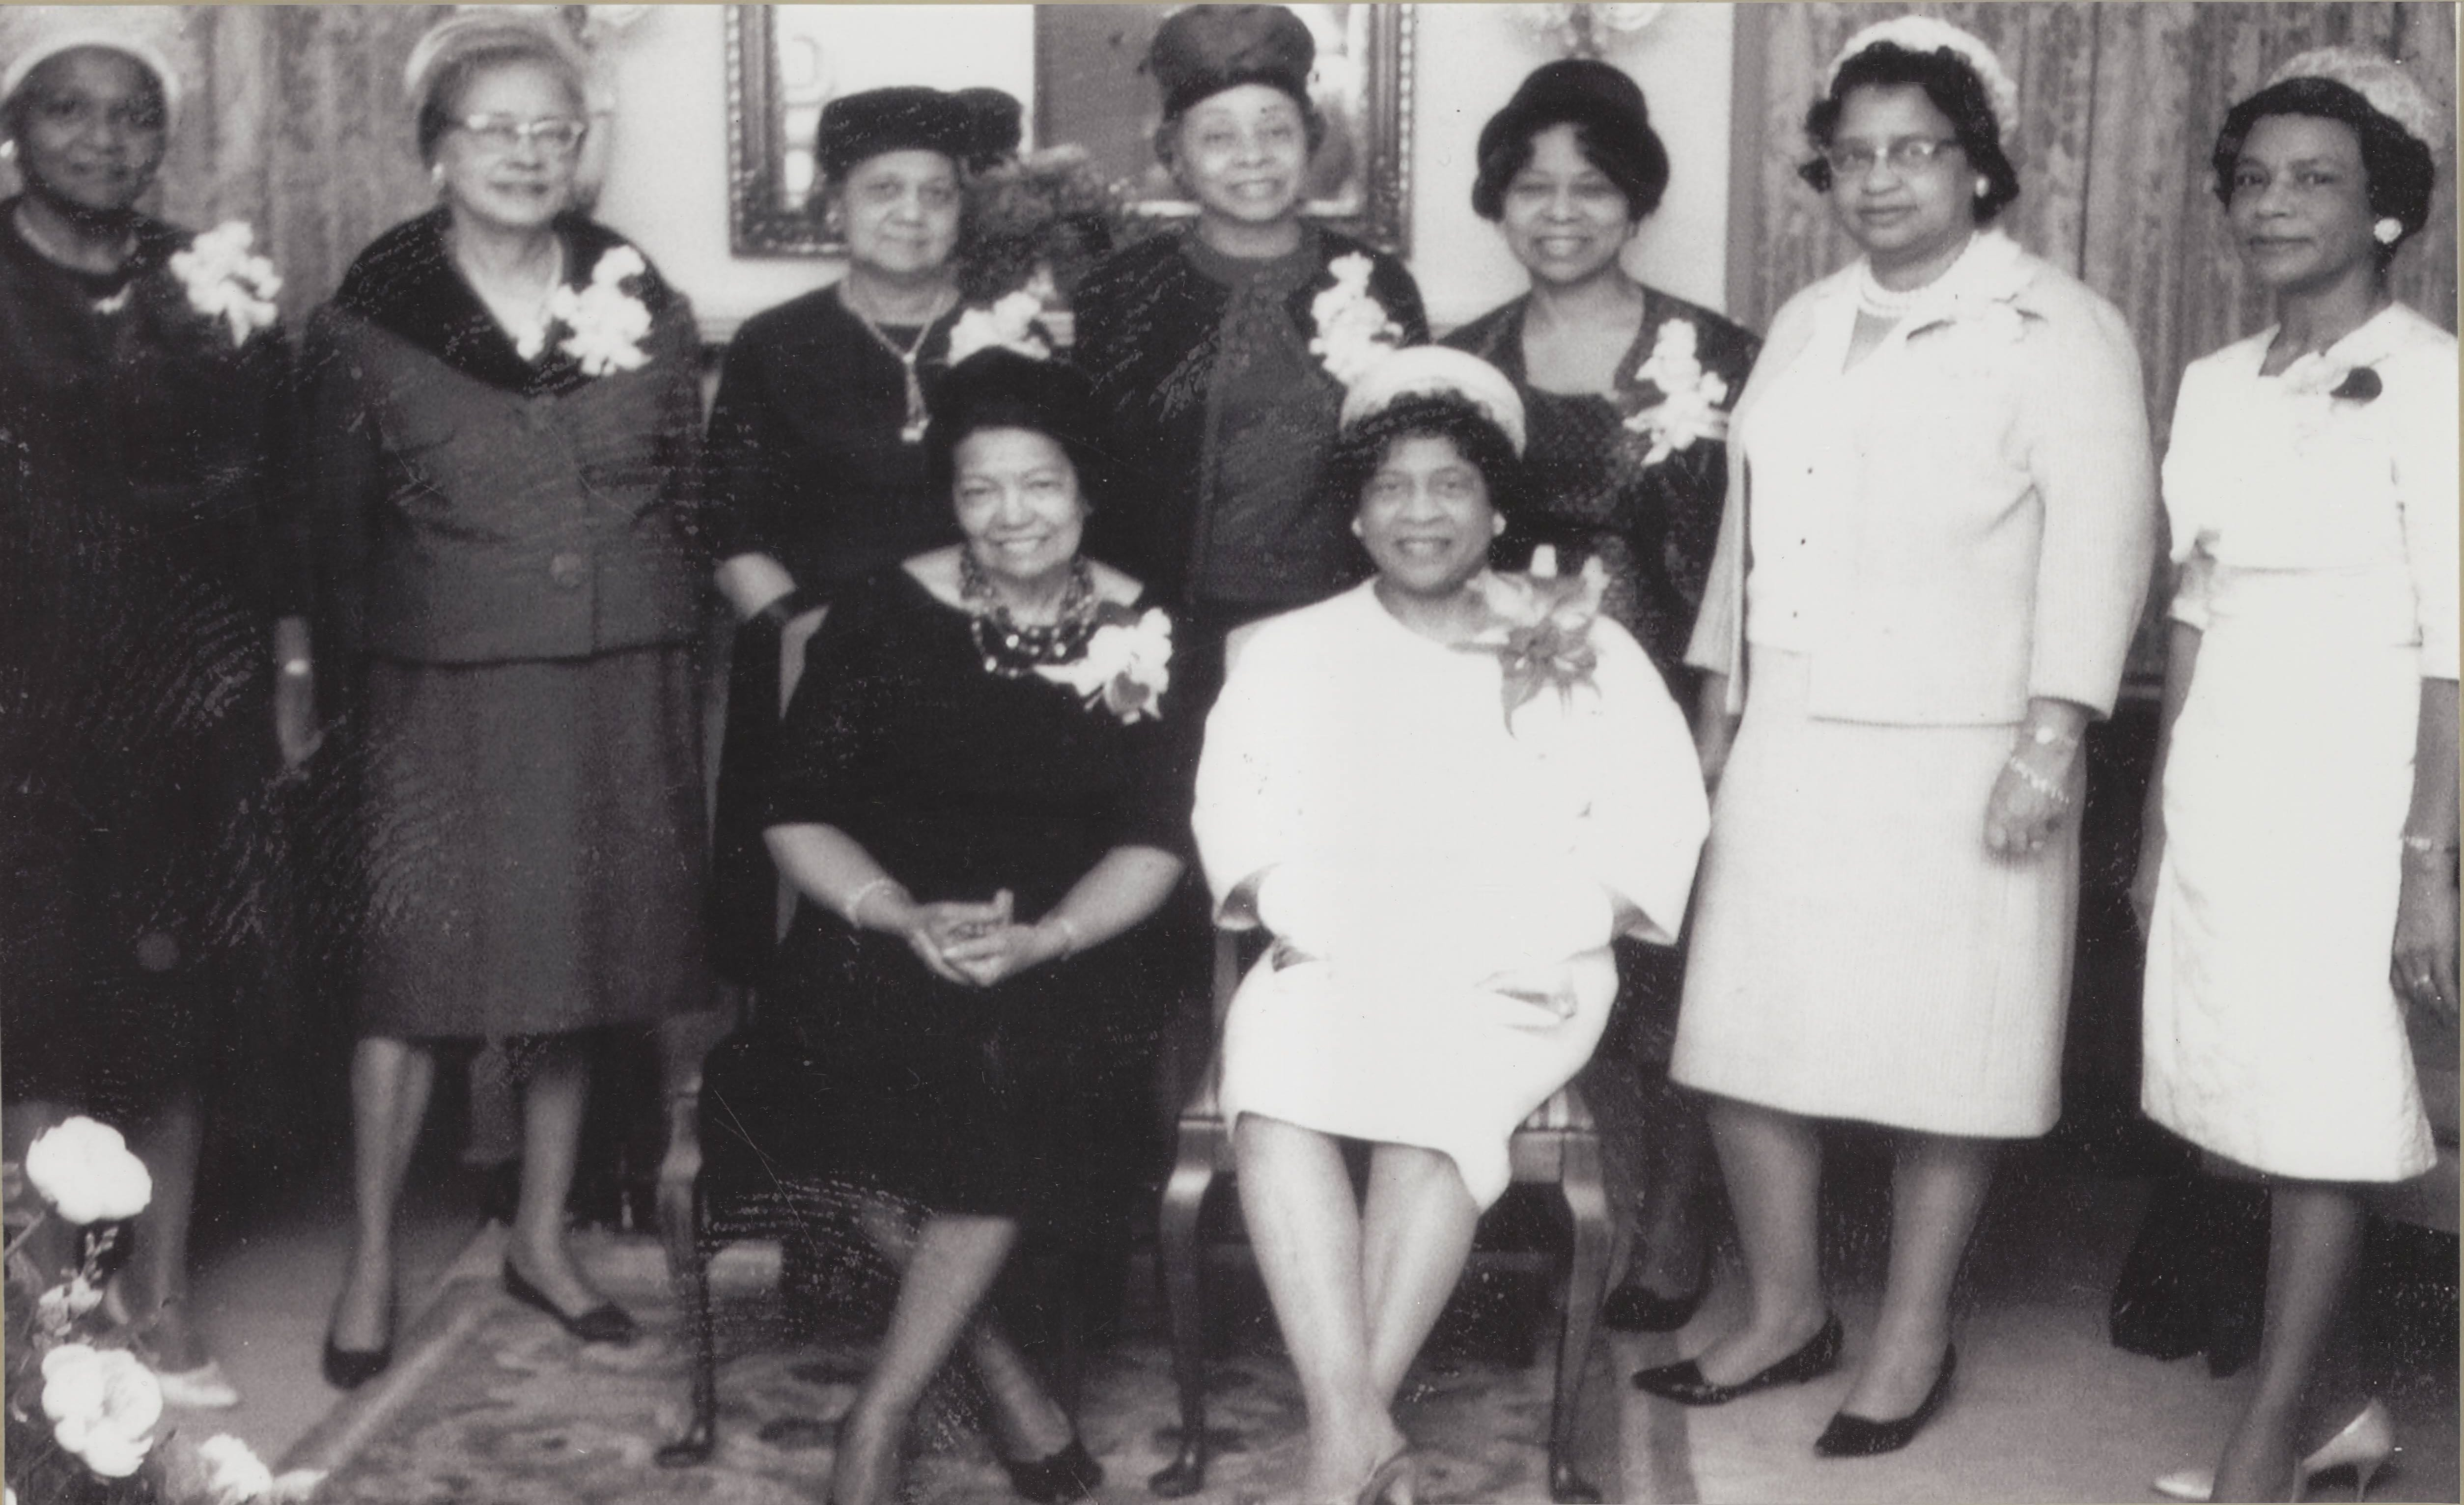 The Black women of the Women s Political Council changed the world but received little recognition